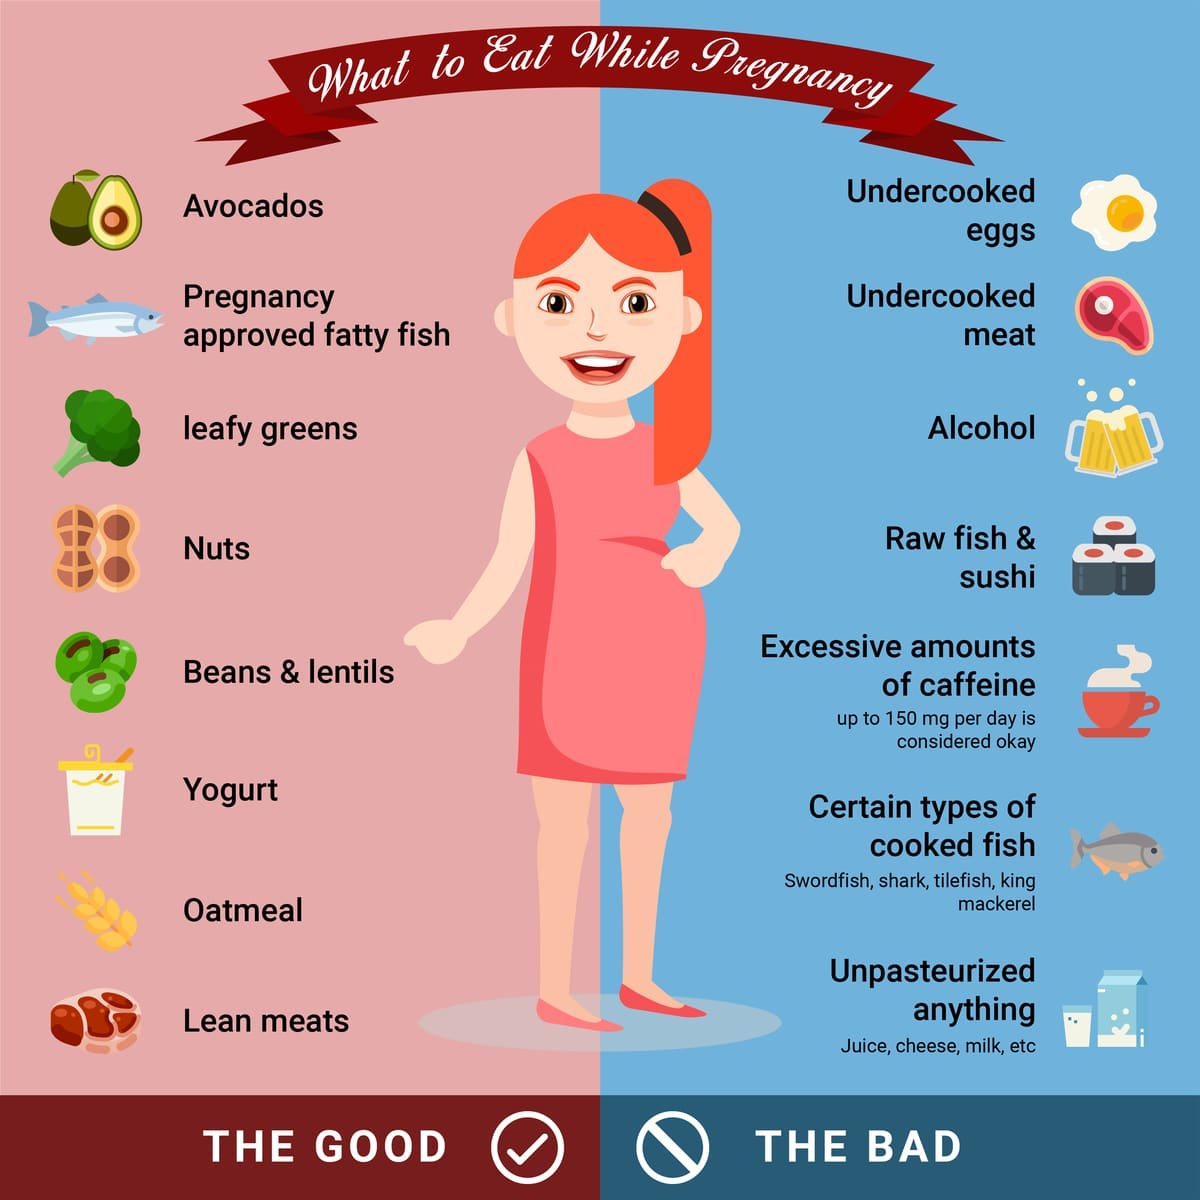 what to eat while pregnant